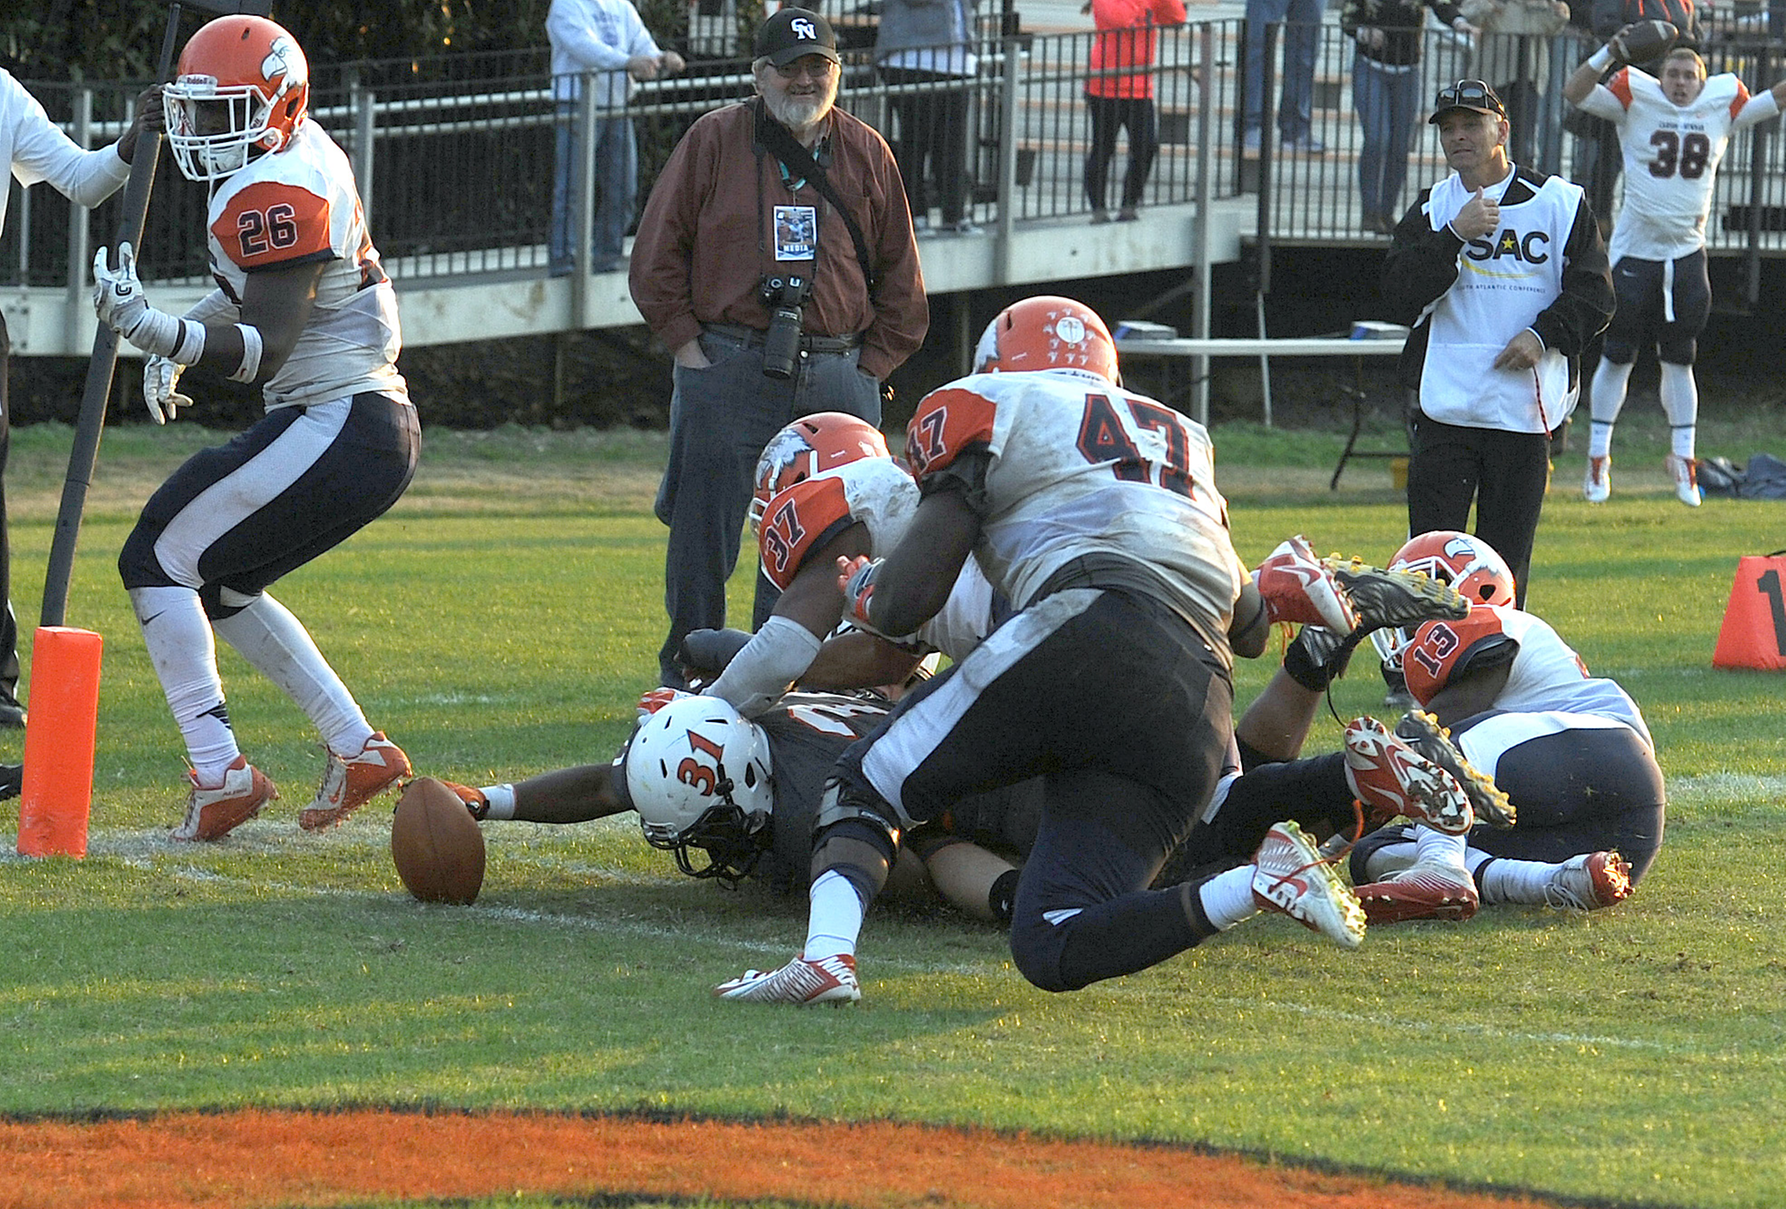 Pioneers stun Eagles with two-point conversion in overtime